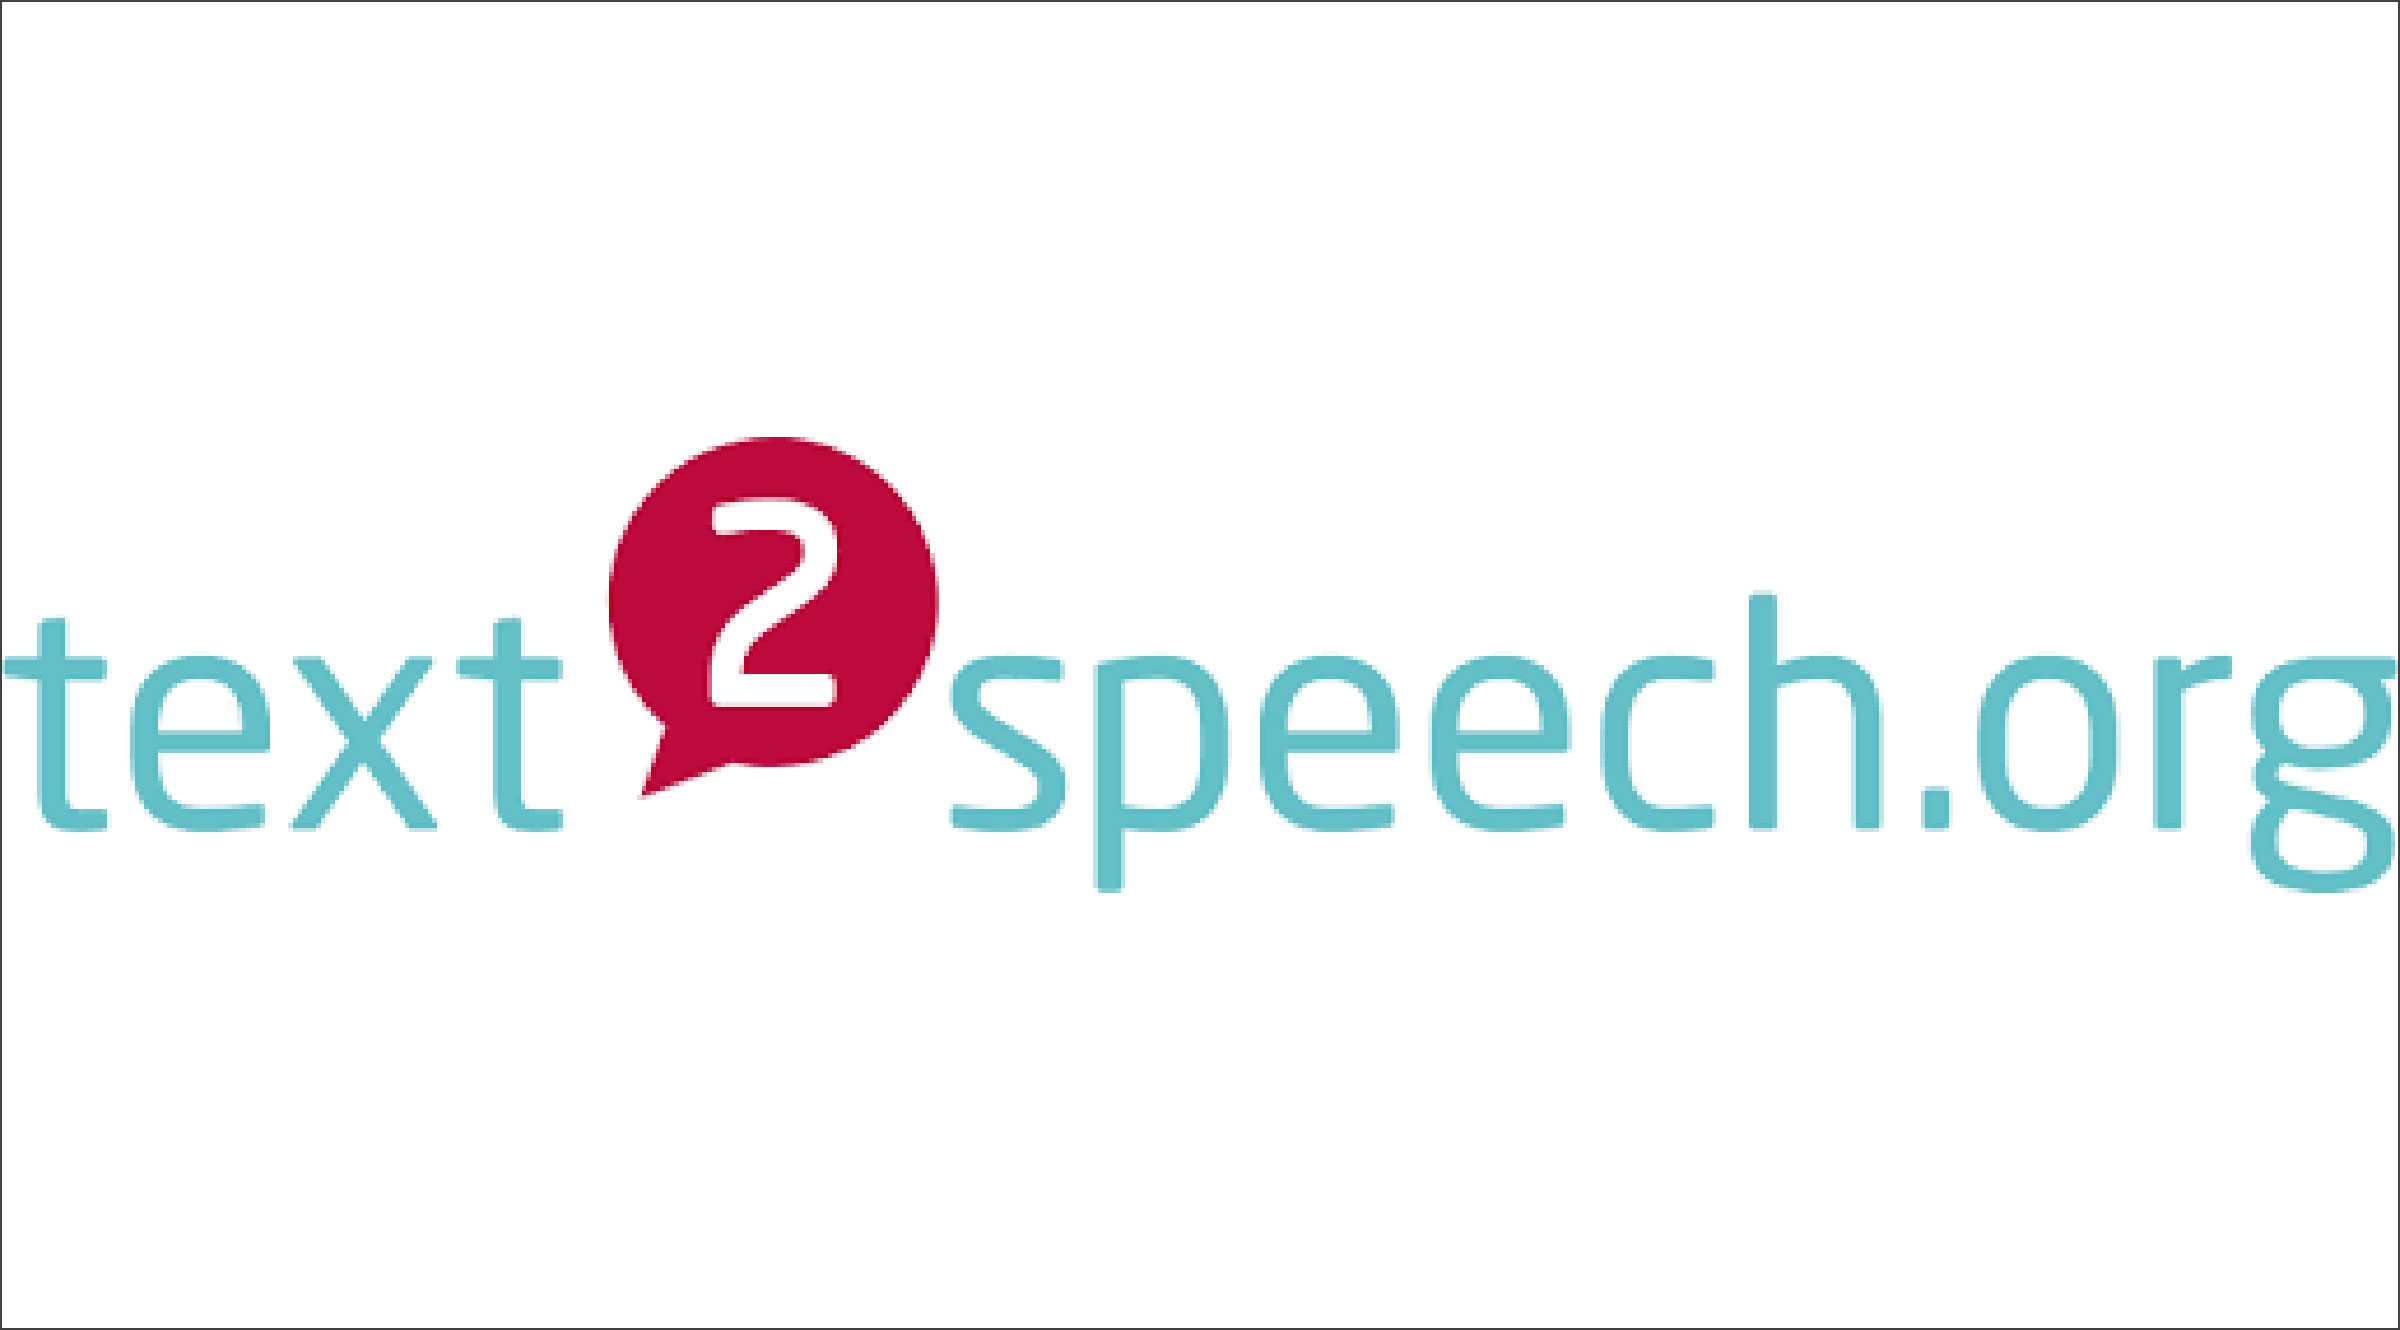 text2speech_stor